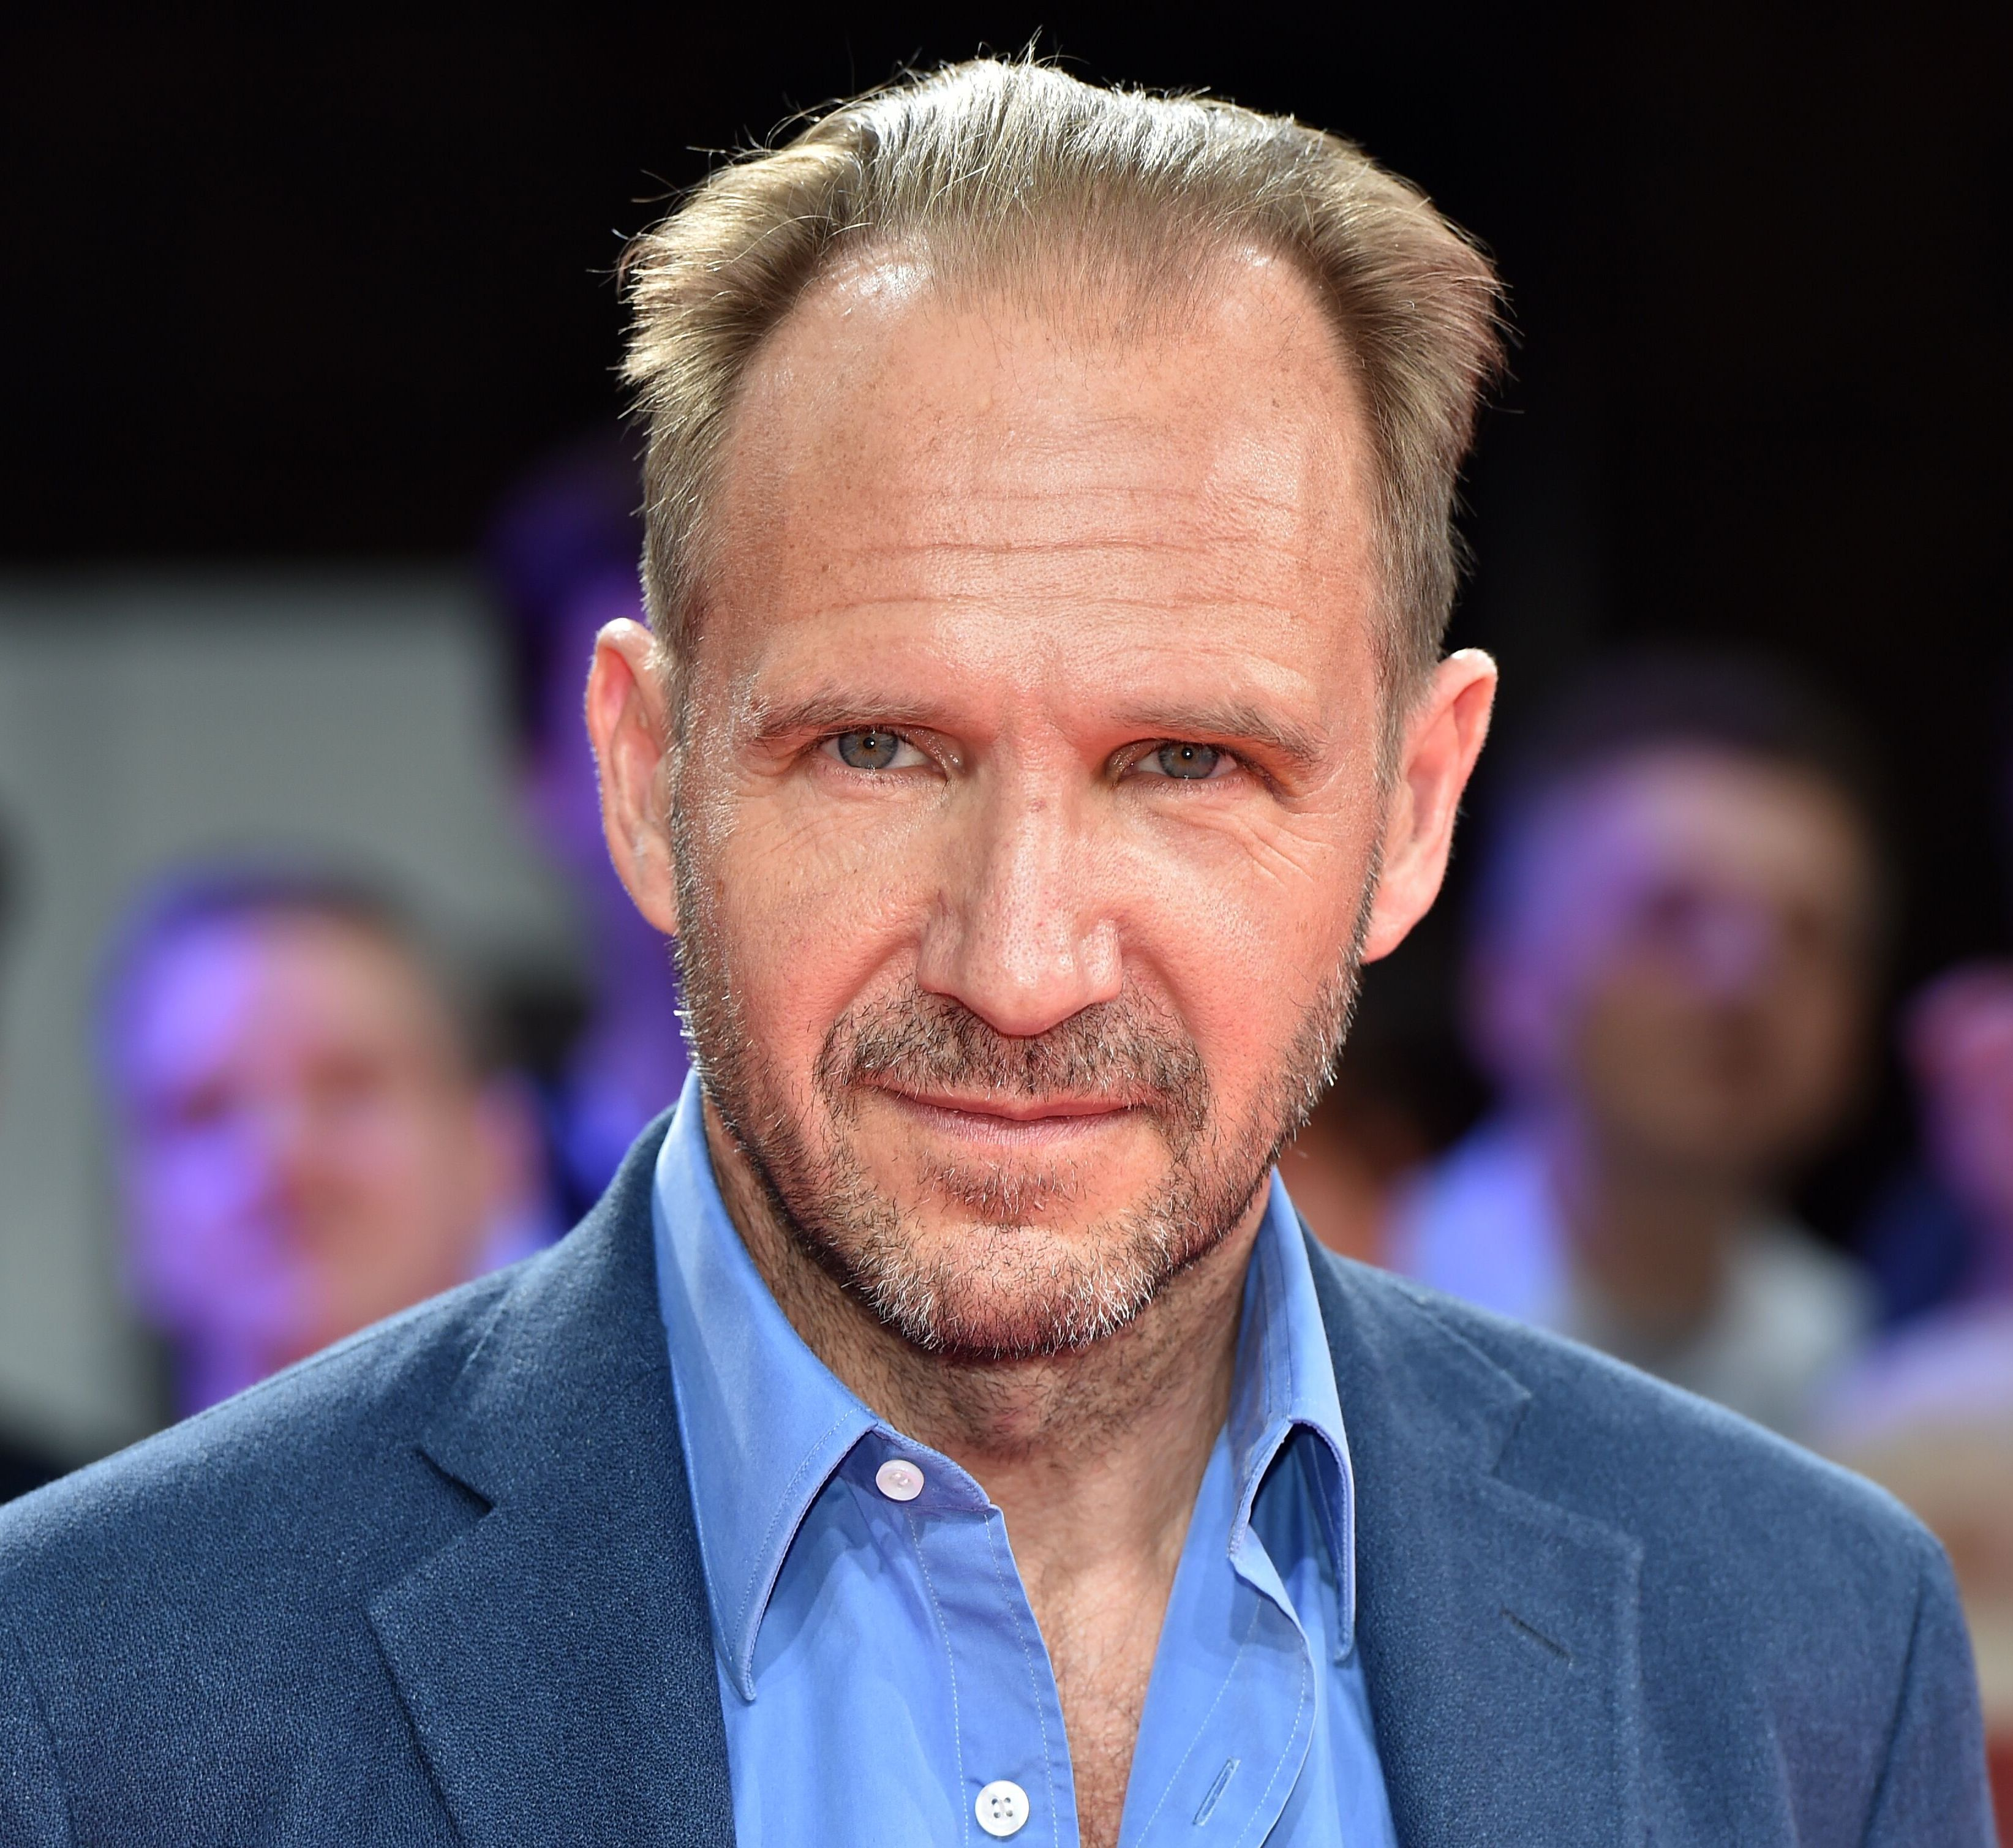 Ralph fiennes/Photo:Getty Images